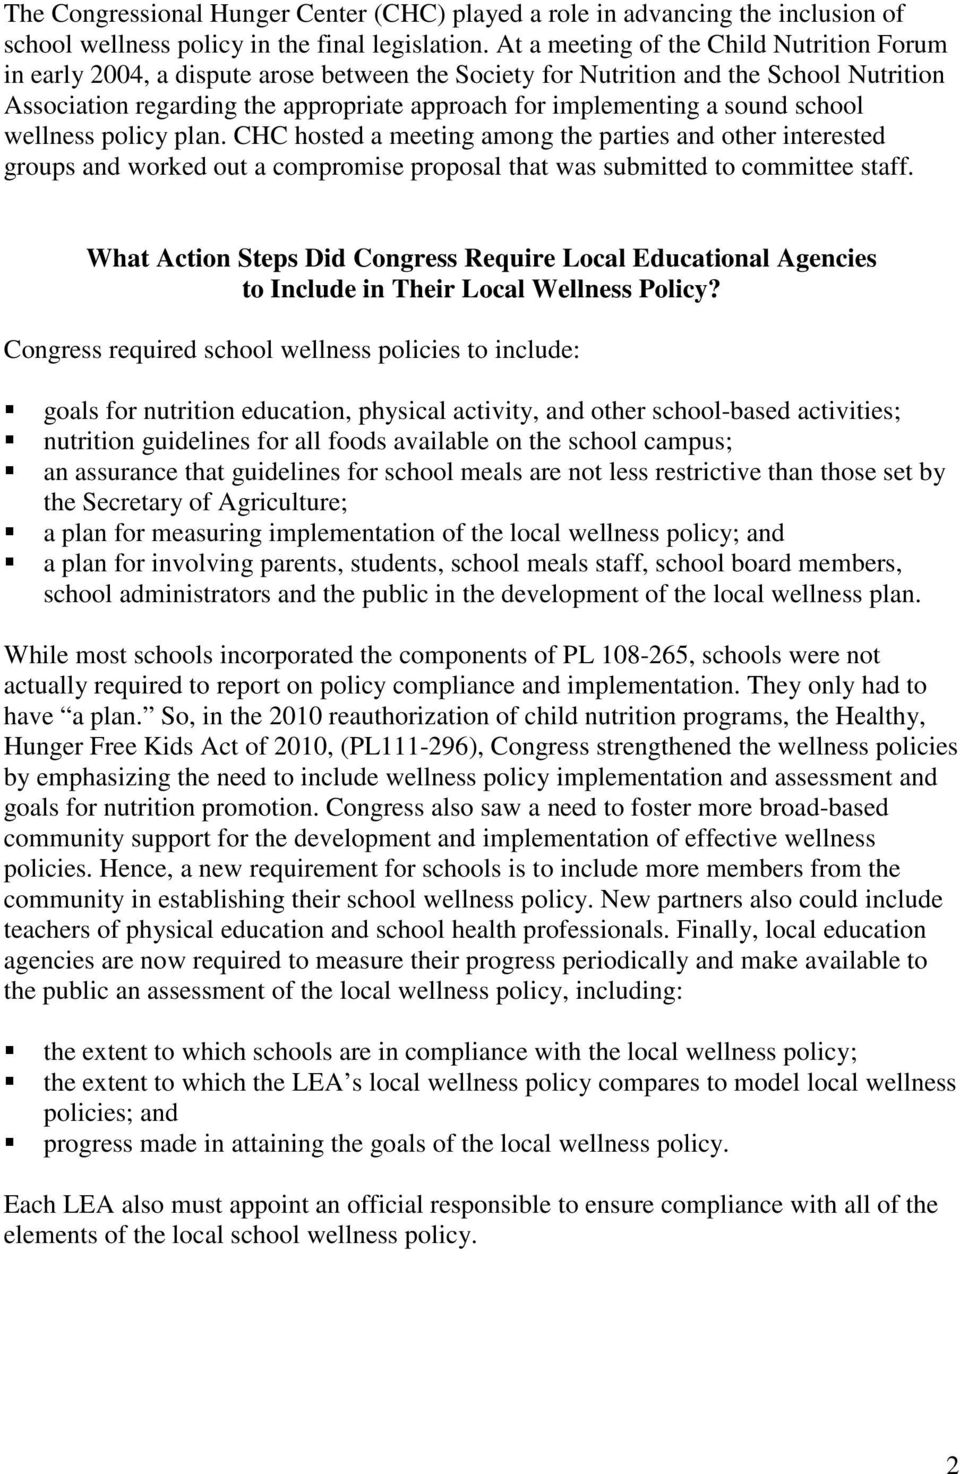 sound school wellness policy plan. CHC hosted a meeting among the parties and other interested groups and worked out a compromise proposal that was submitted to committee staff.